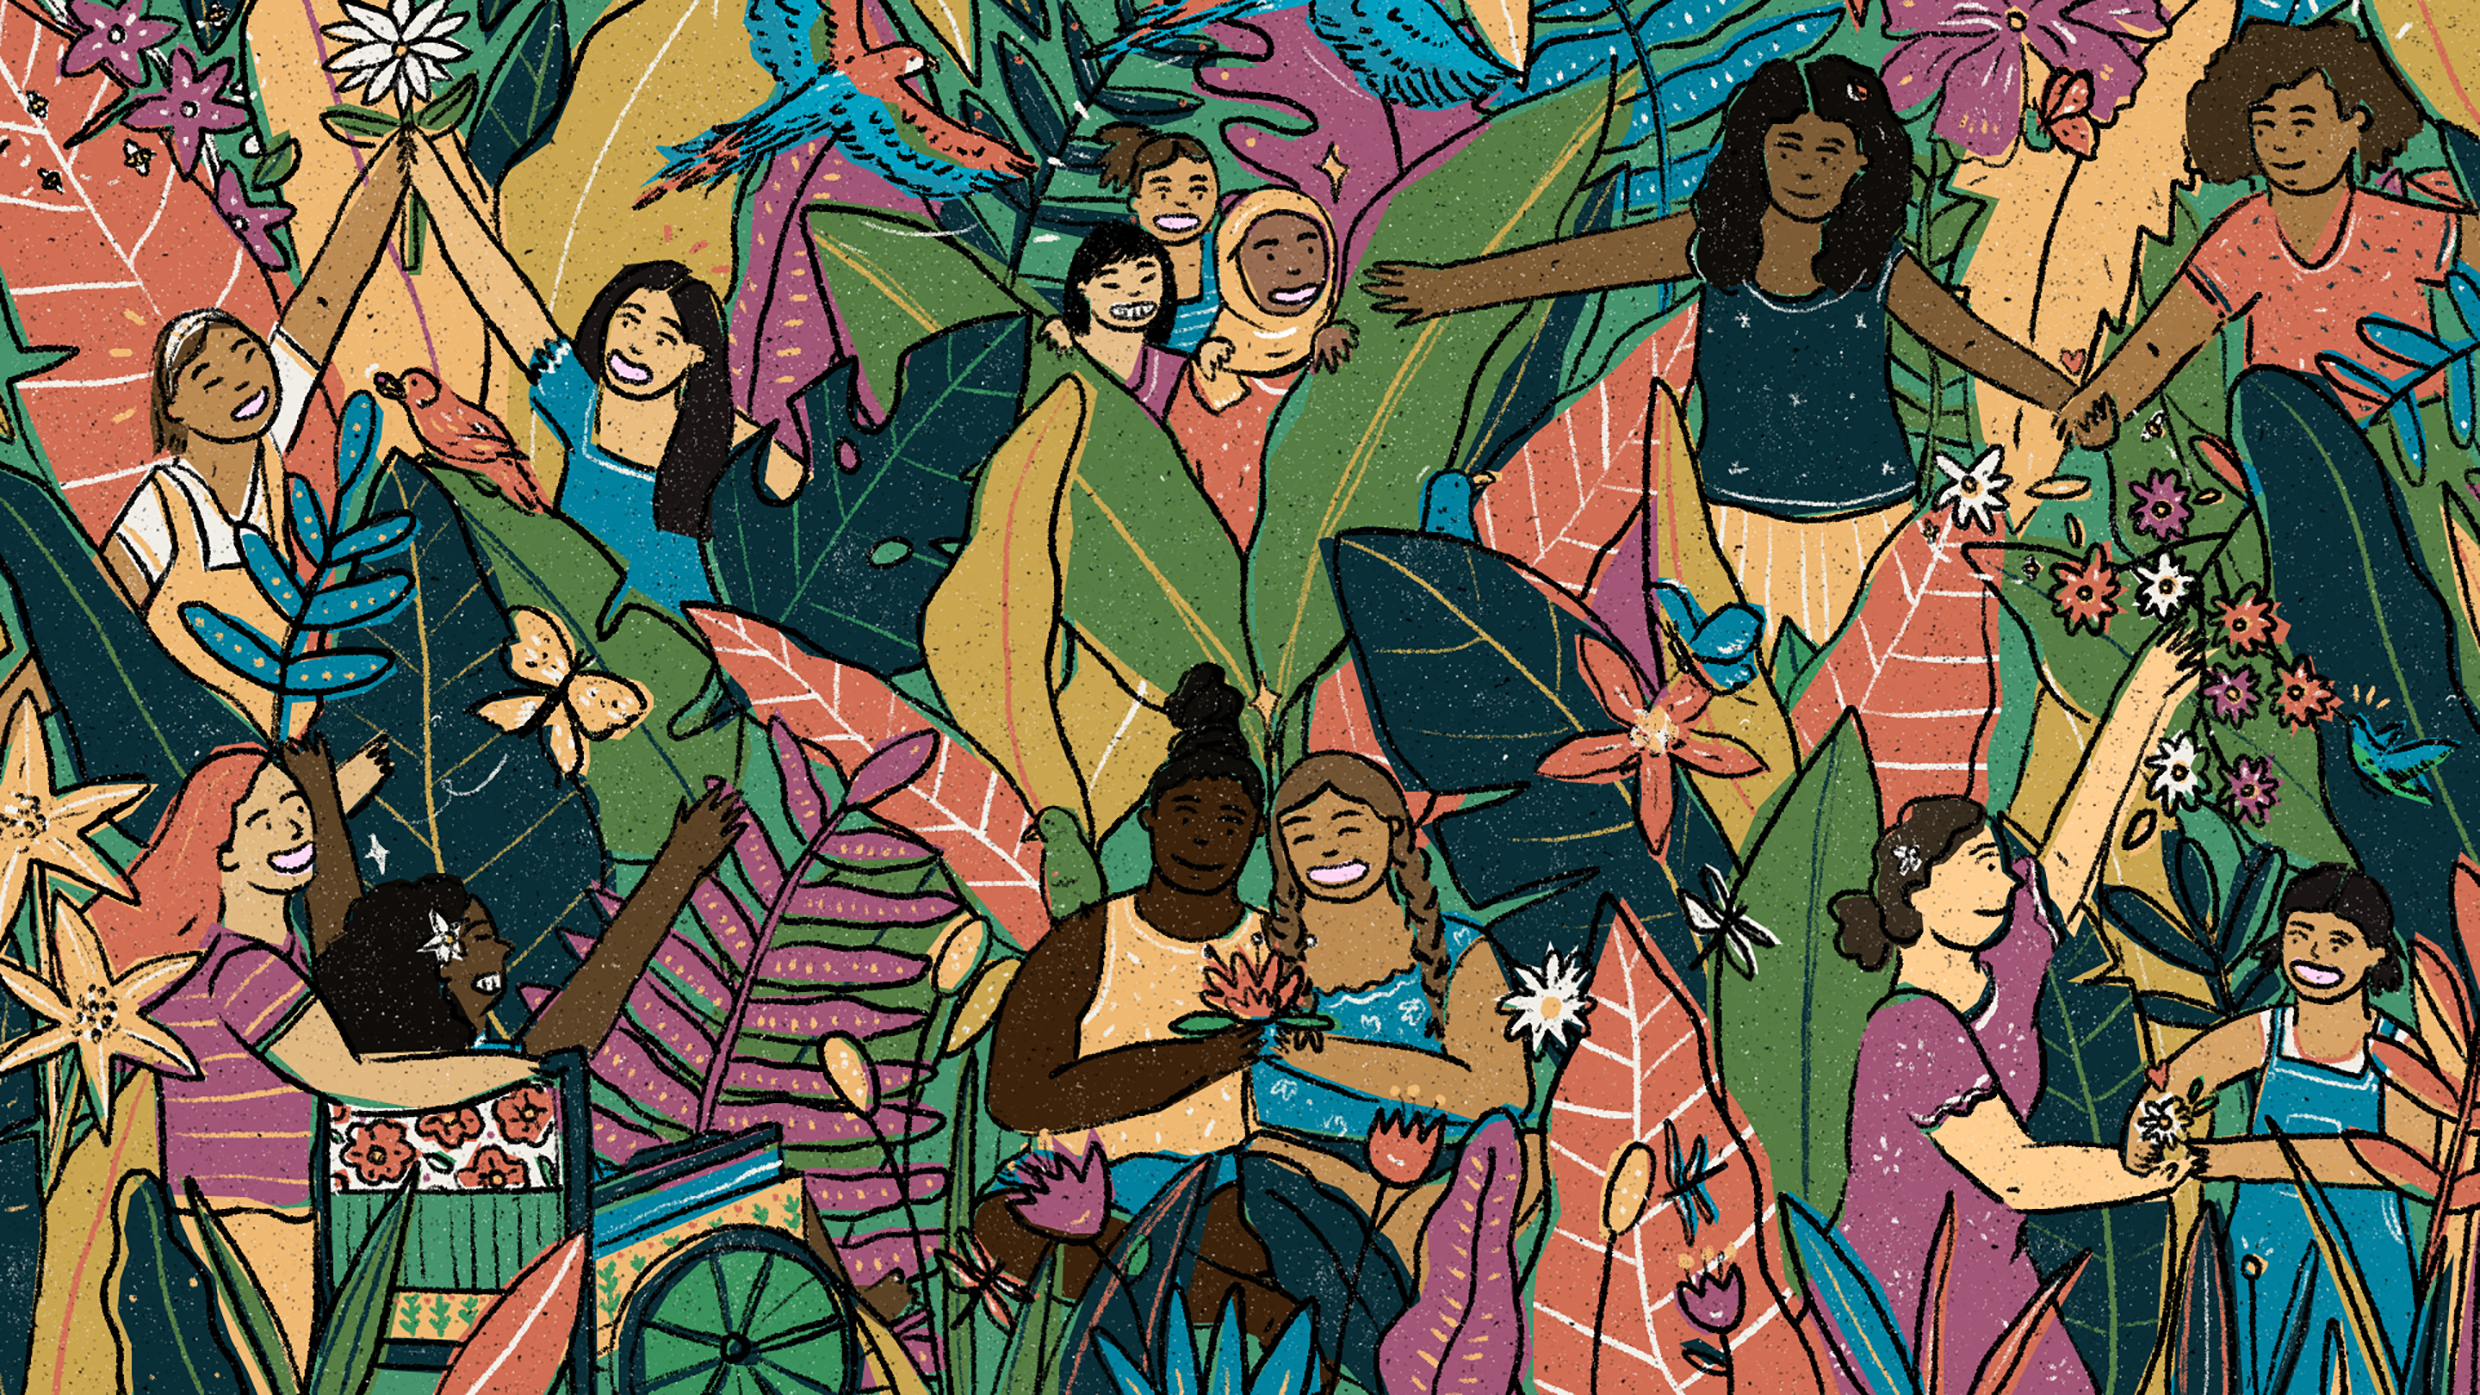 Orchid Project: Illustration of girls in an abstract jungle